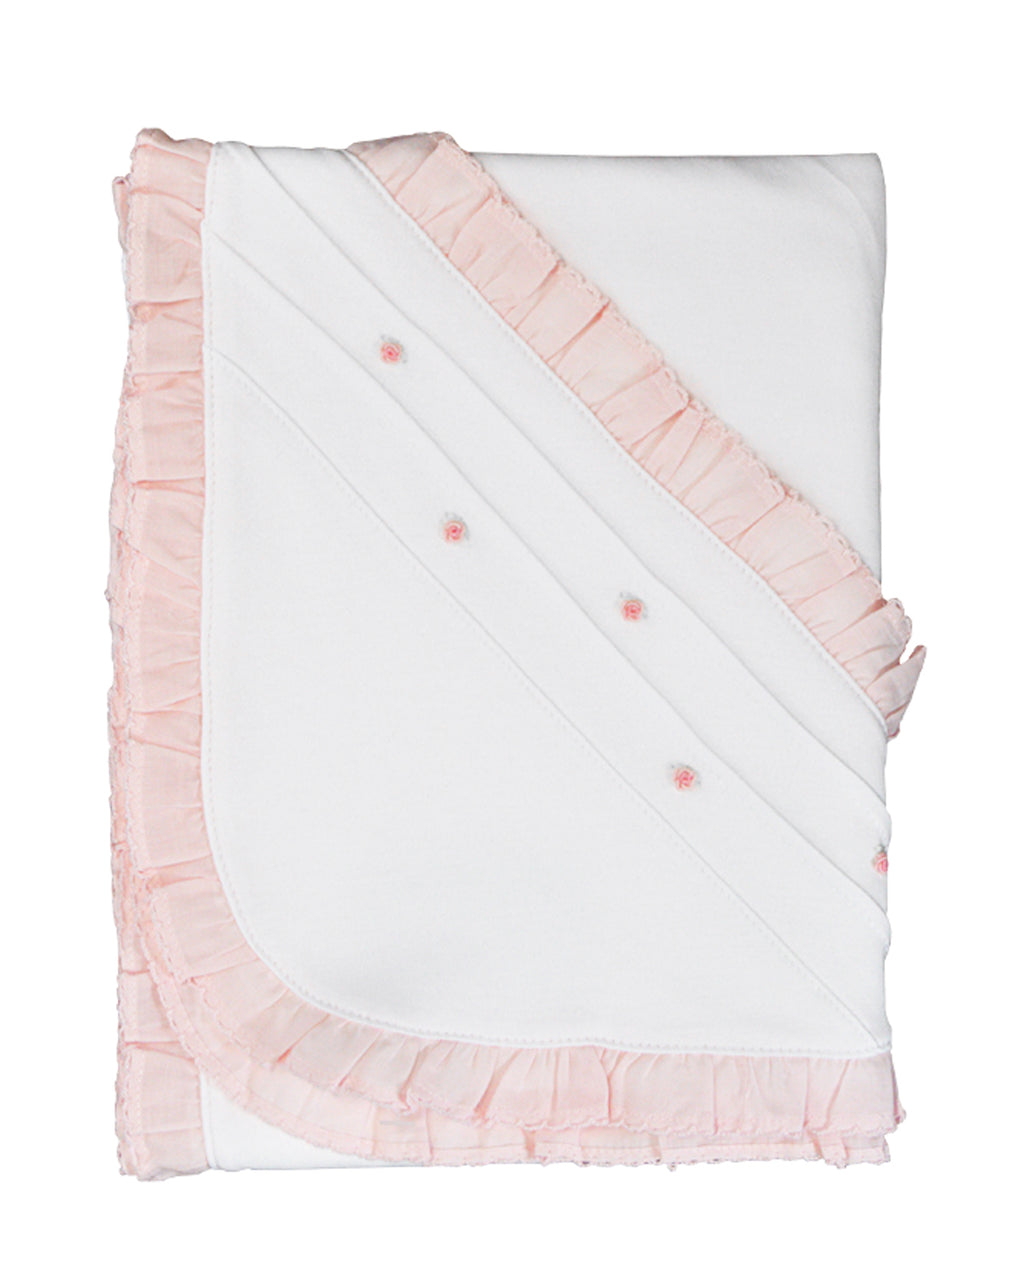 Pink ruffle baby girls blanket with ruffle - Little Threads Inc. Children's Clothing